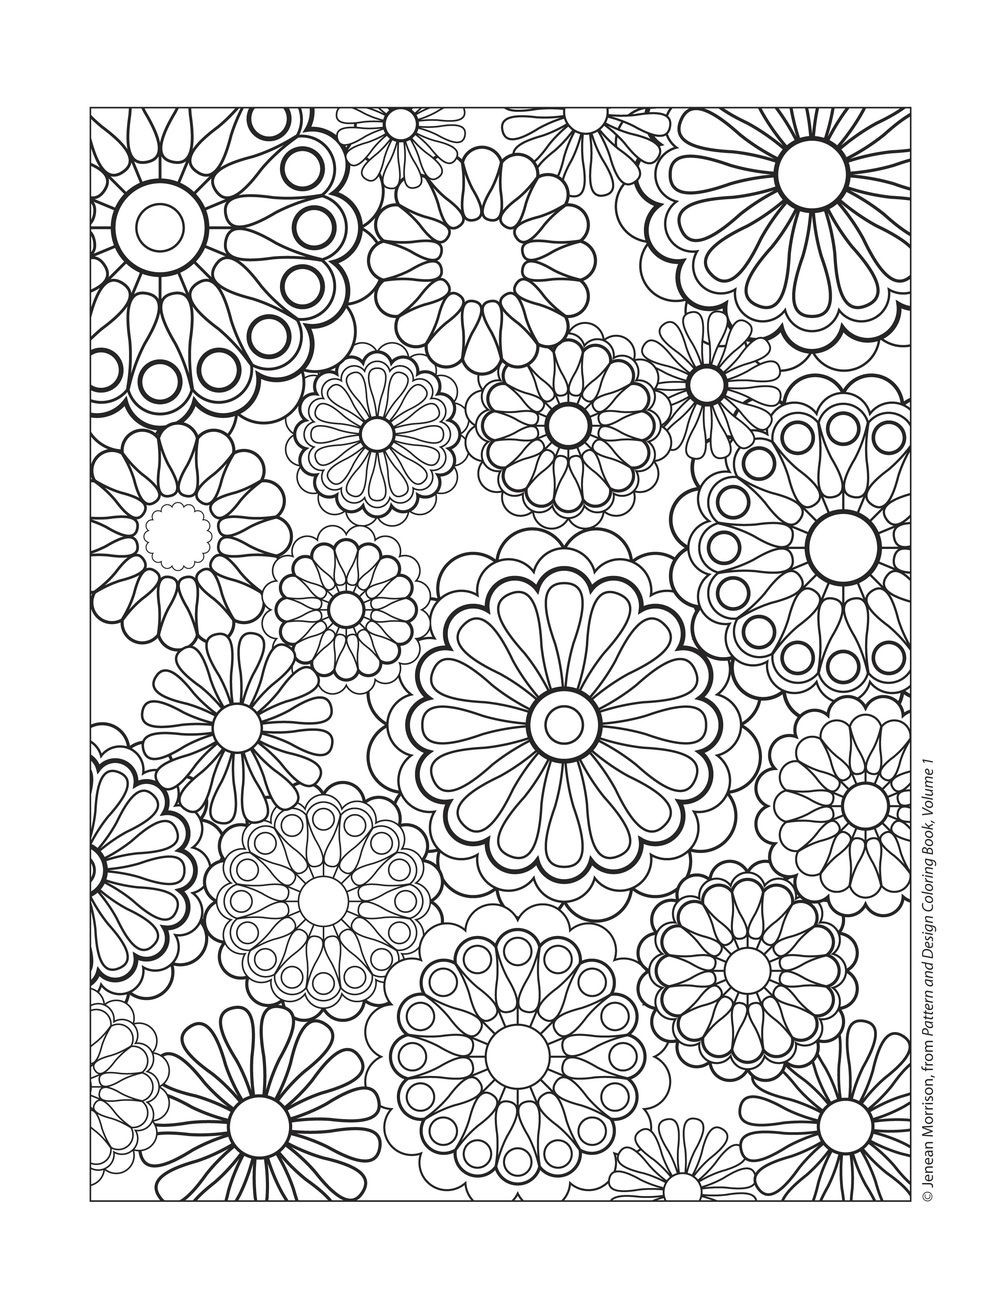 green flower vases for sale of cool vases flower vase coloring page pages flowers in a top i 0d with free colouring pages for children best design patterns coloring pages free coloring pages